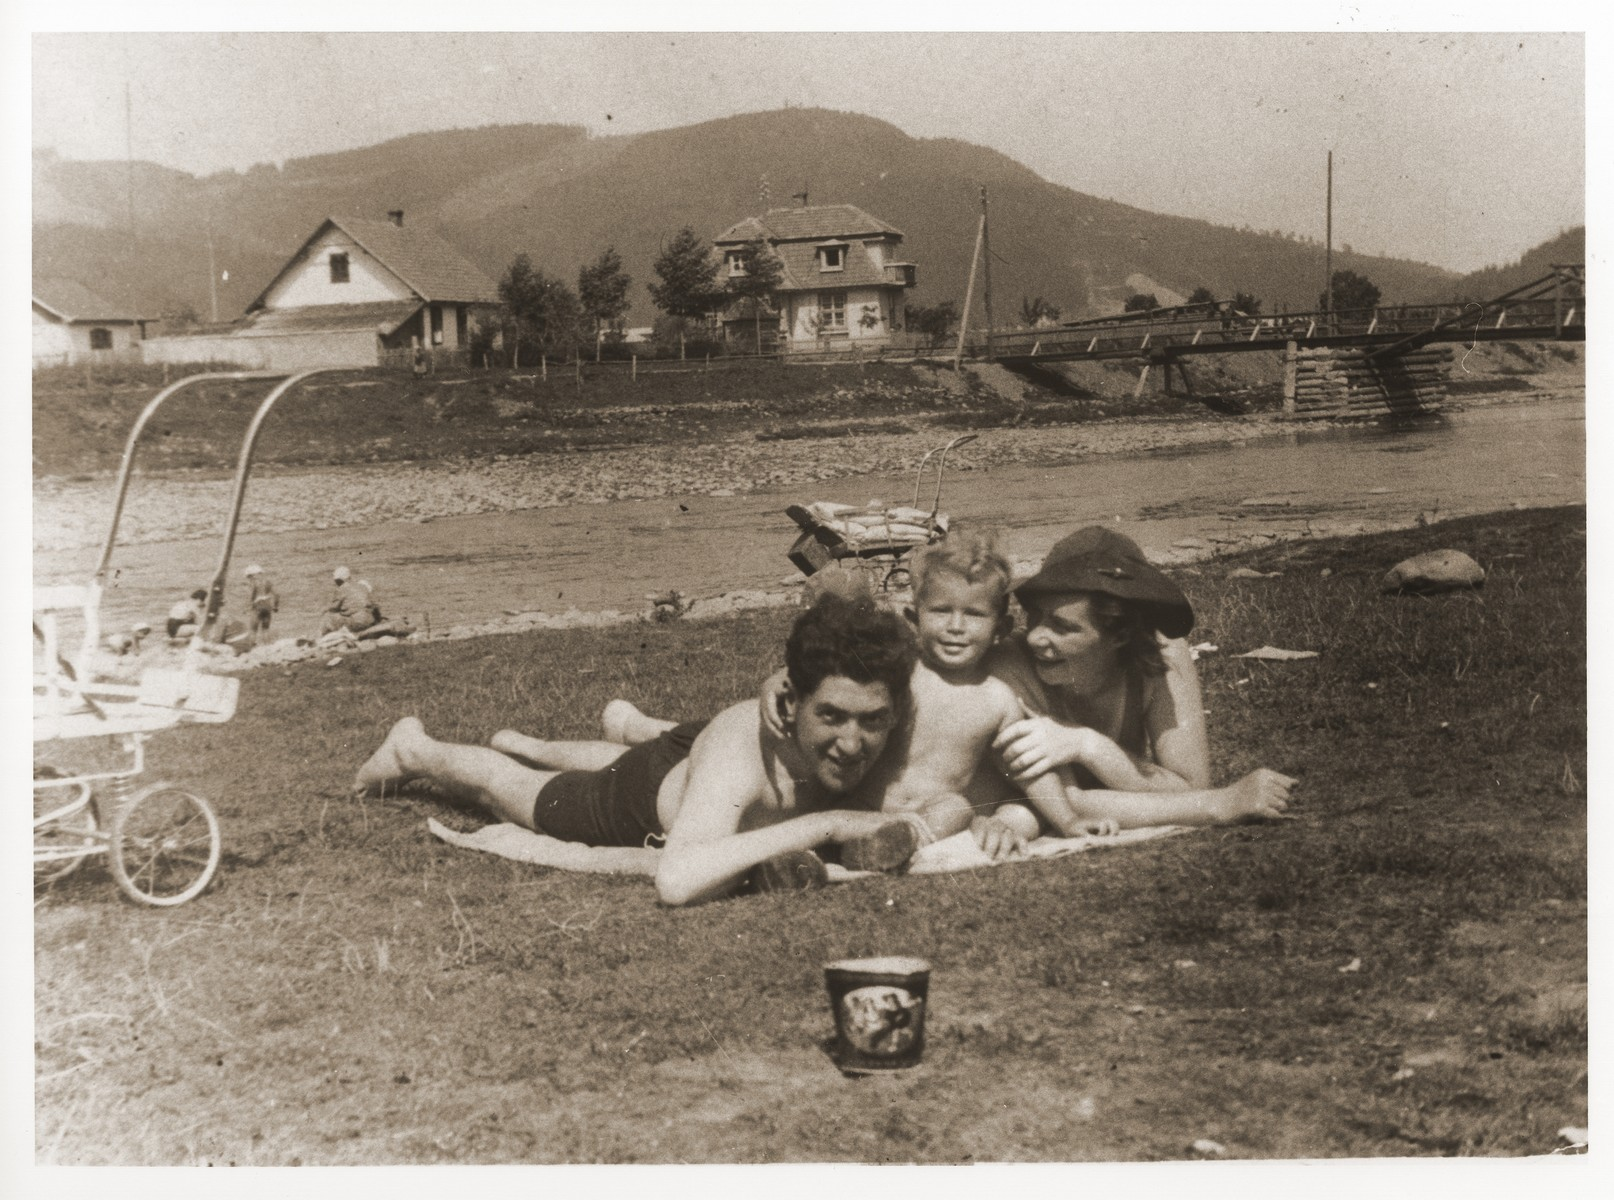 A Jewish couple sunbathes with their son on the beach in the resort town of Skole, shortly before the German invasion of Poland.  Pictured are Izio and Anda Littman with their son, Otto.